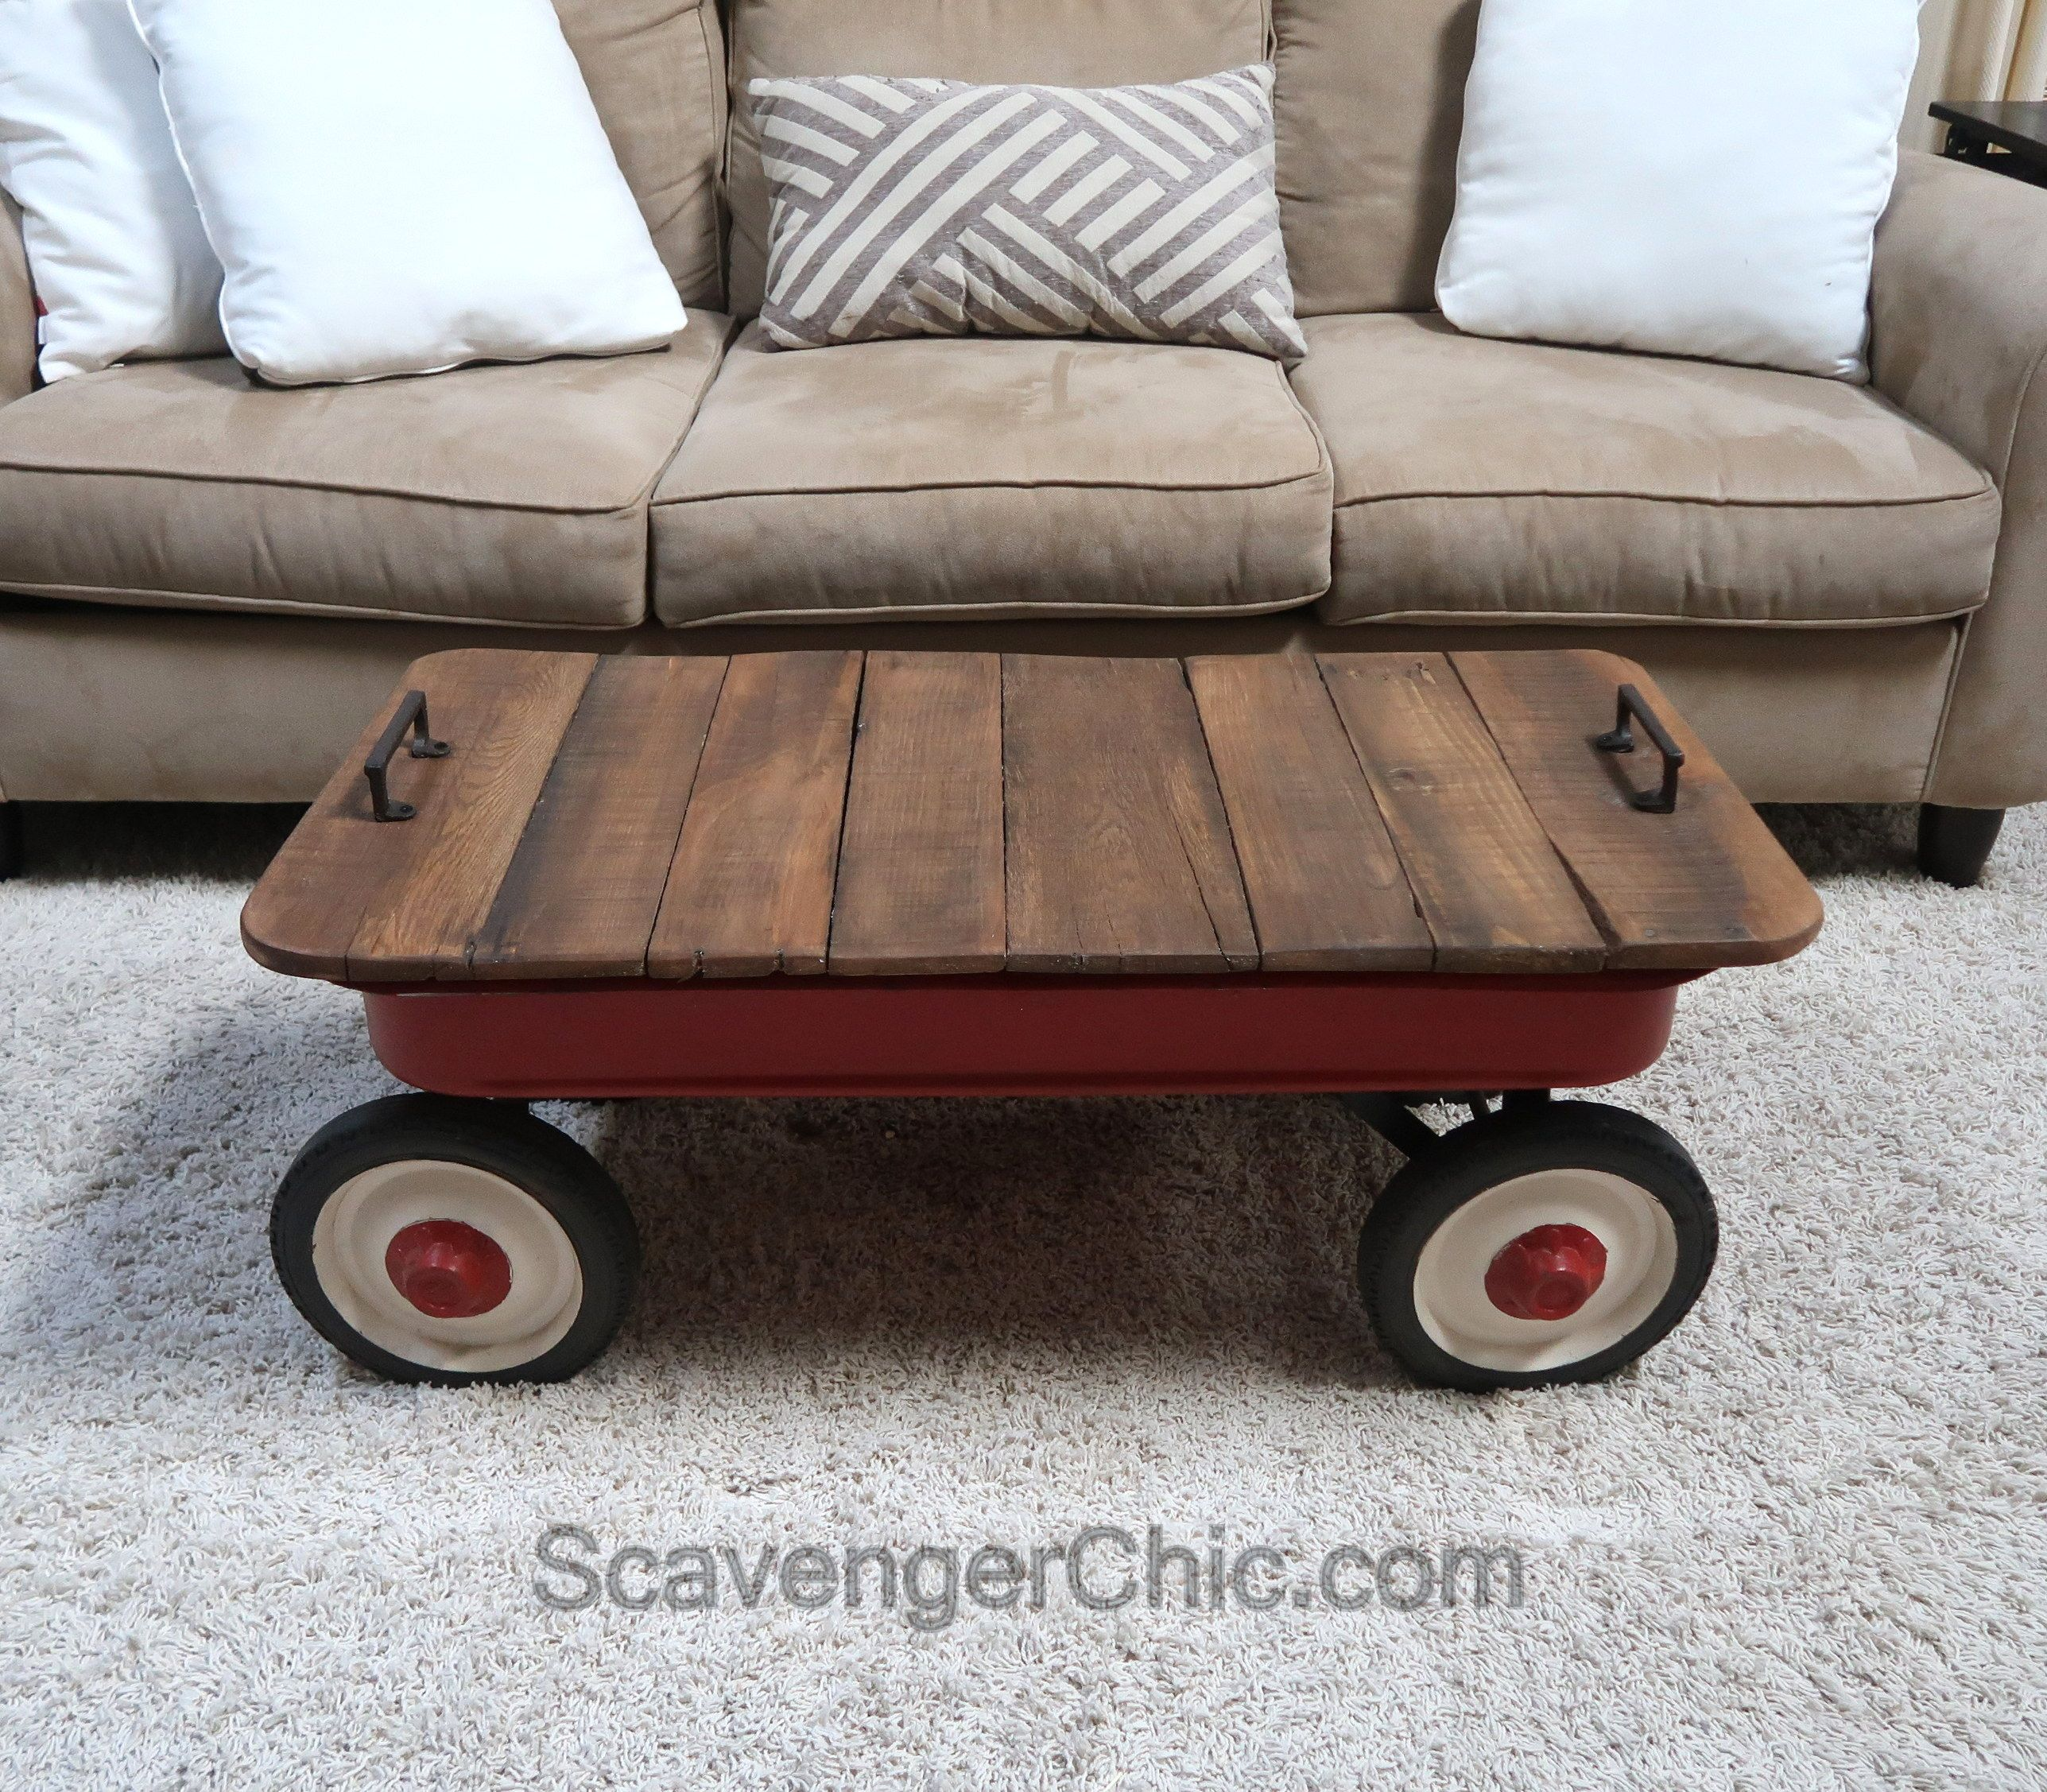 Little Red Wagon Coffee Table Scavenger Chic Red Wagon Coffee